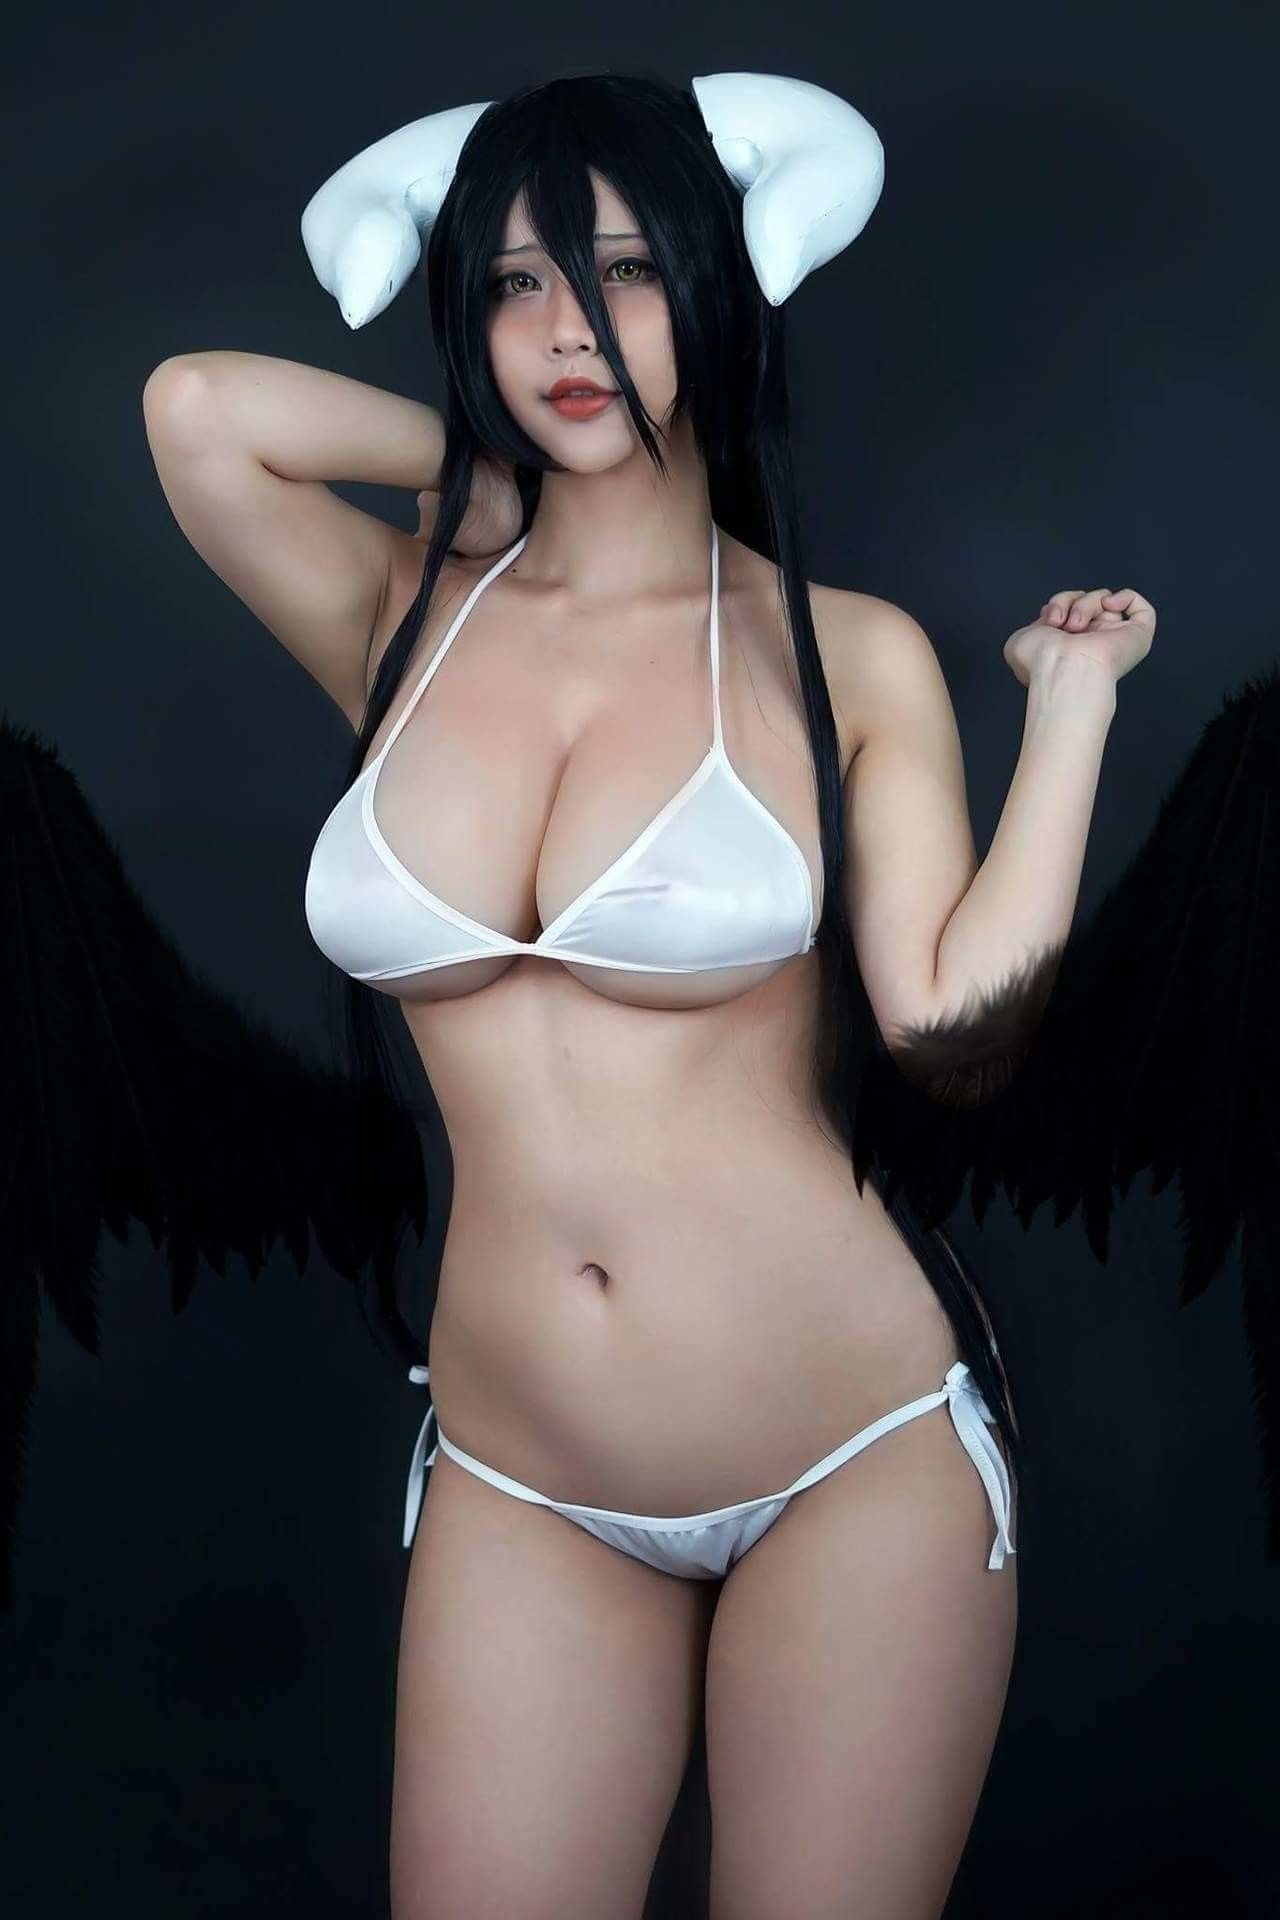 f8c7f3bb5b5 Albedo from Overlord Cosplayer  Hana Bunny Cosplay